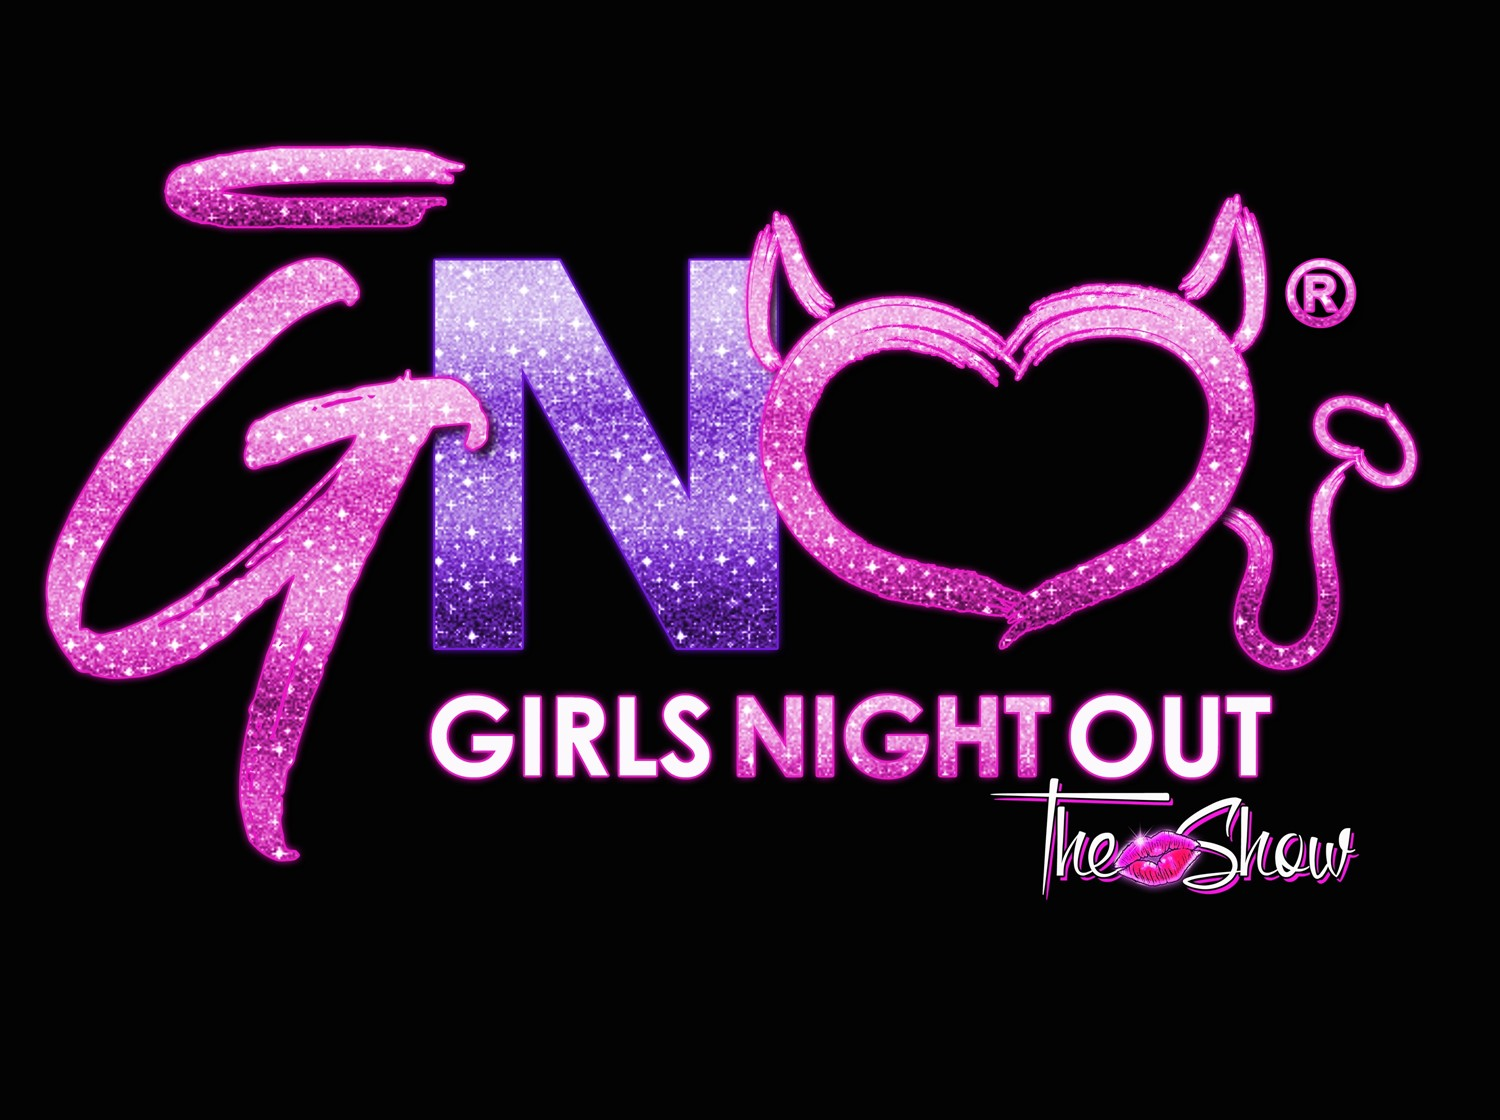 Mystic Bar (21+) Chippewa Falls, WI on May 21, 21:00@Mystic Bar - Buy tickets and Get information on Girls Night Out the Show tickets.girlsnightouttheshow.com